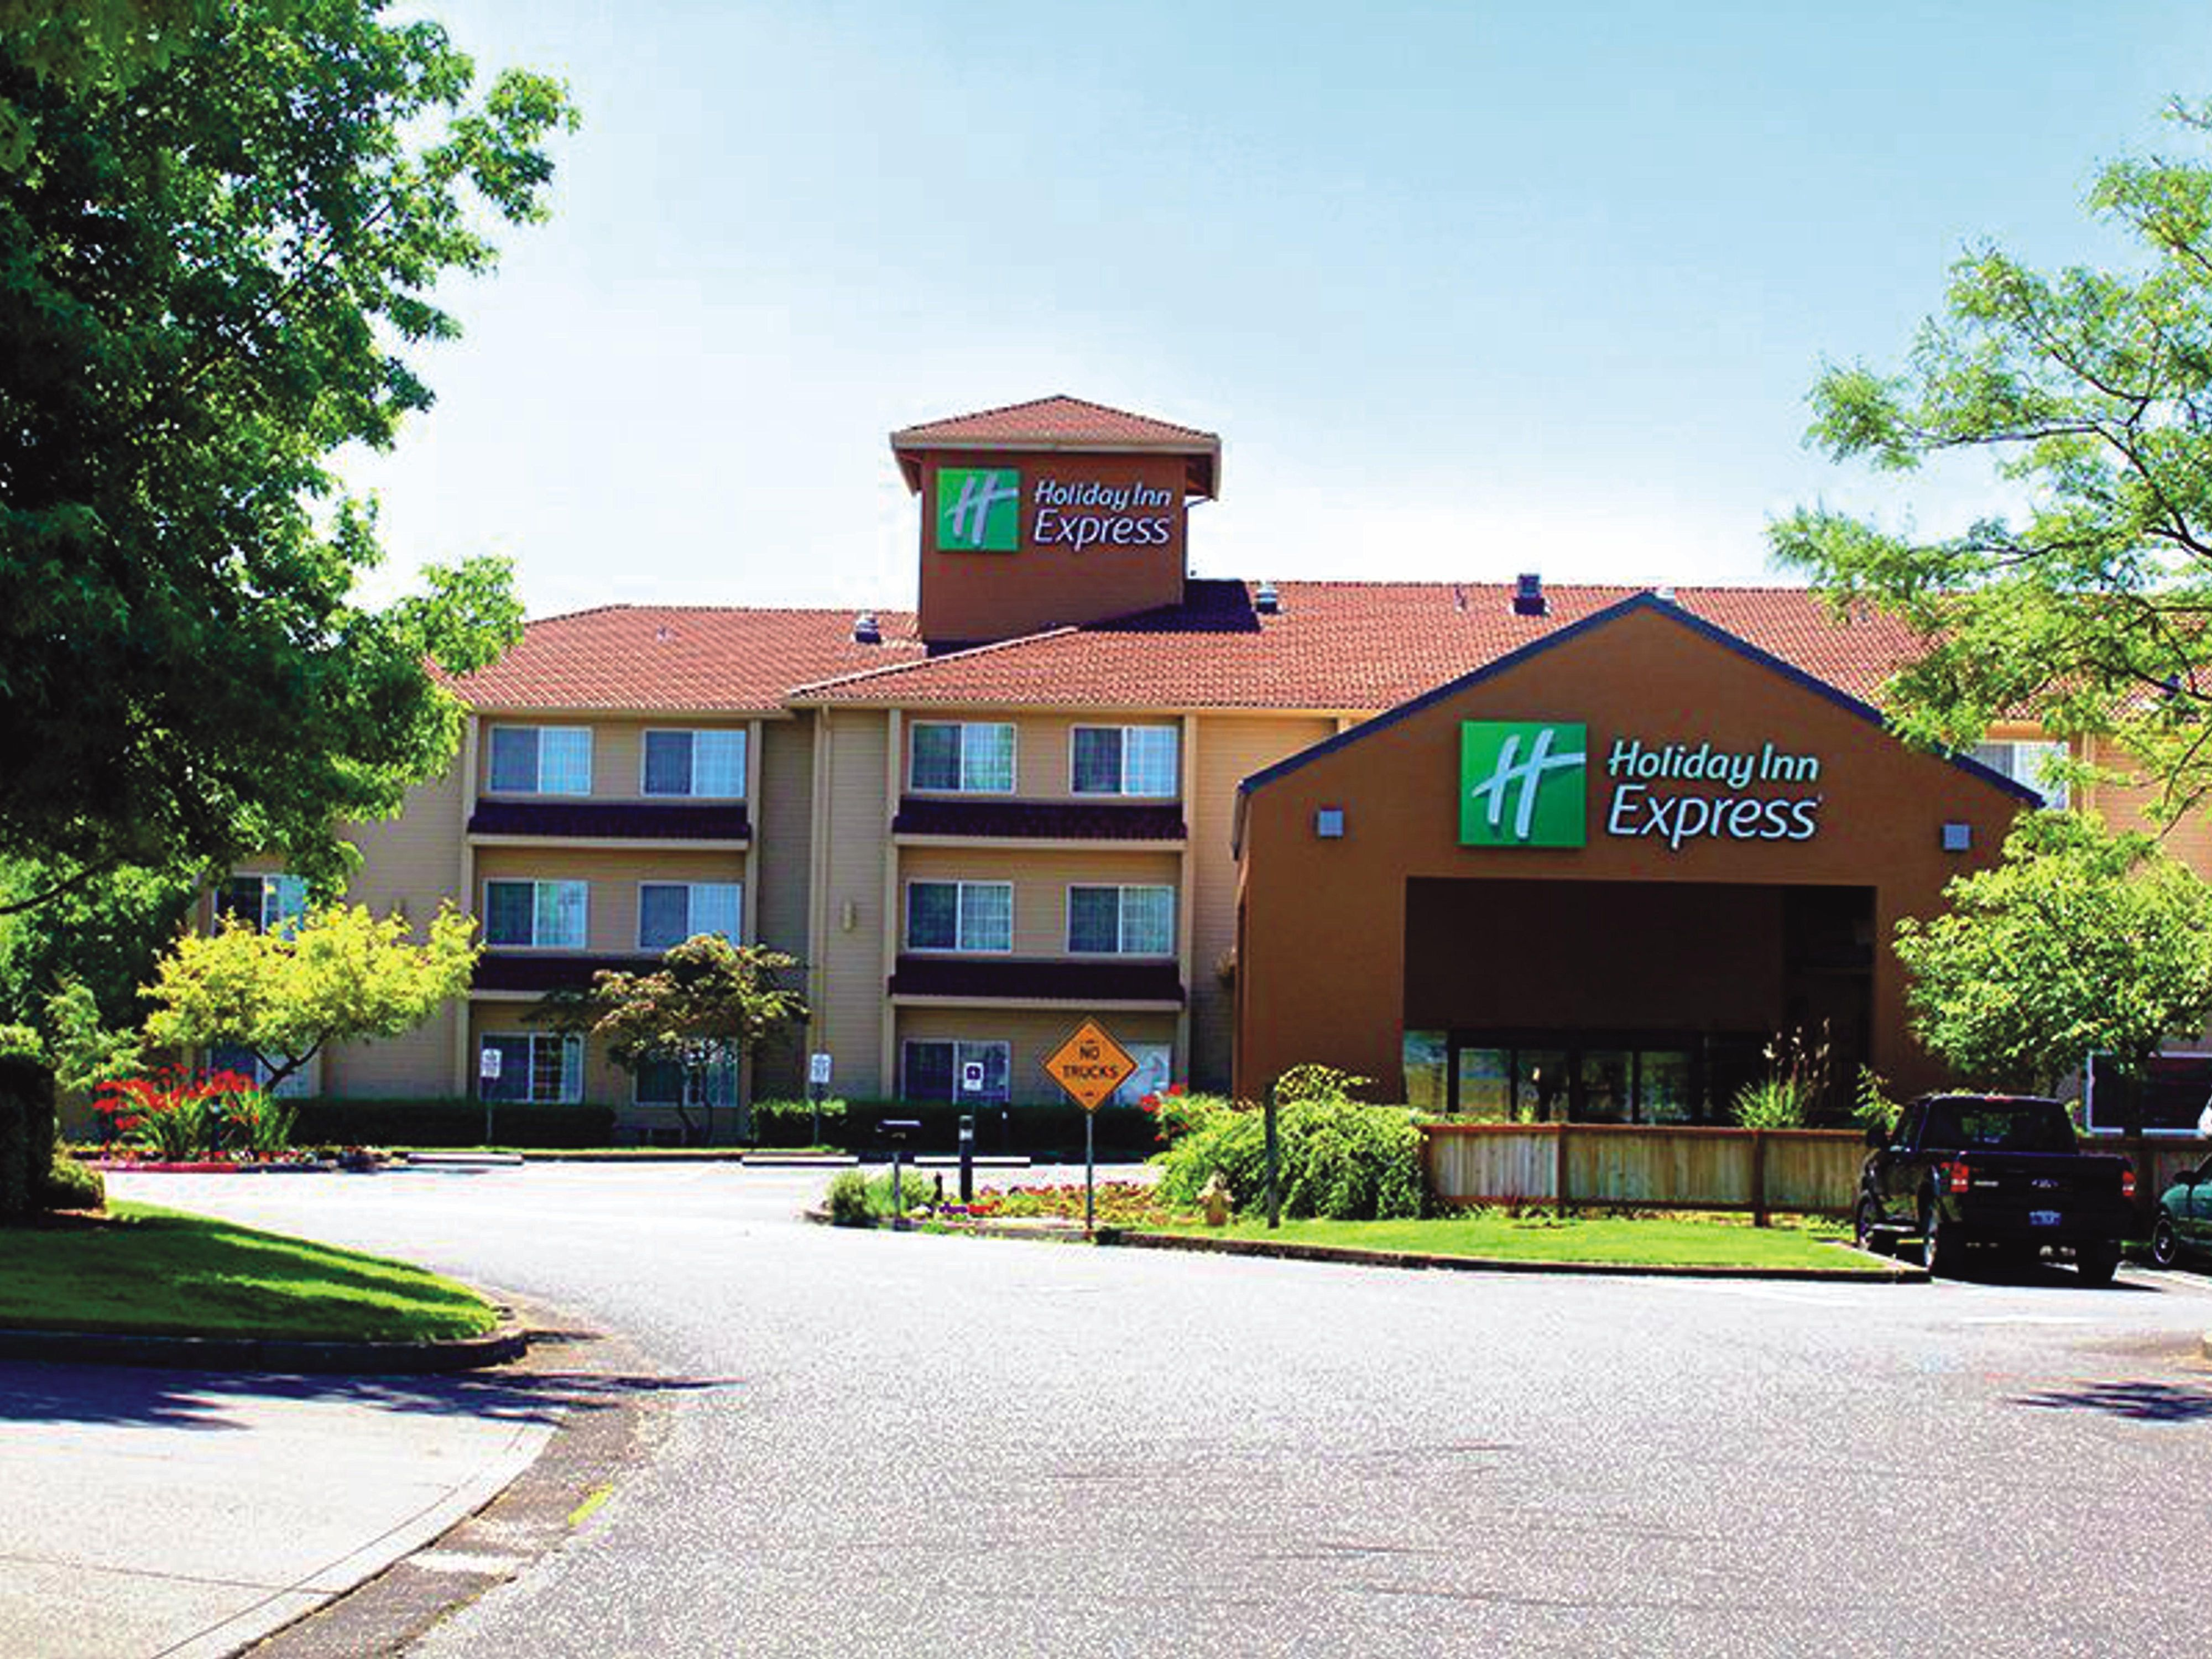 Holiday Inn Express Gladstone Hotels Budget Hotels In Gladstone By Ihg